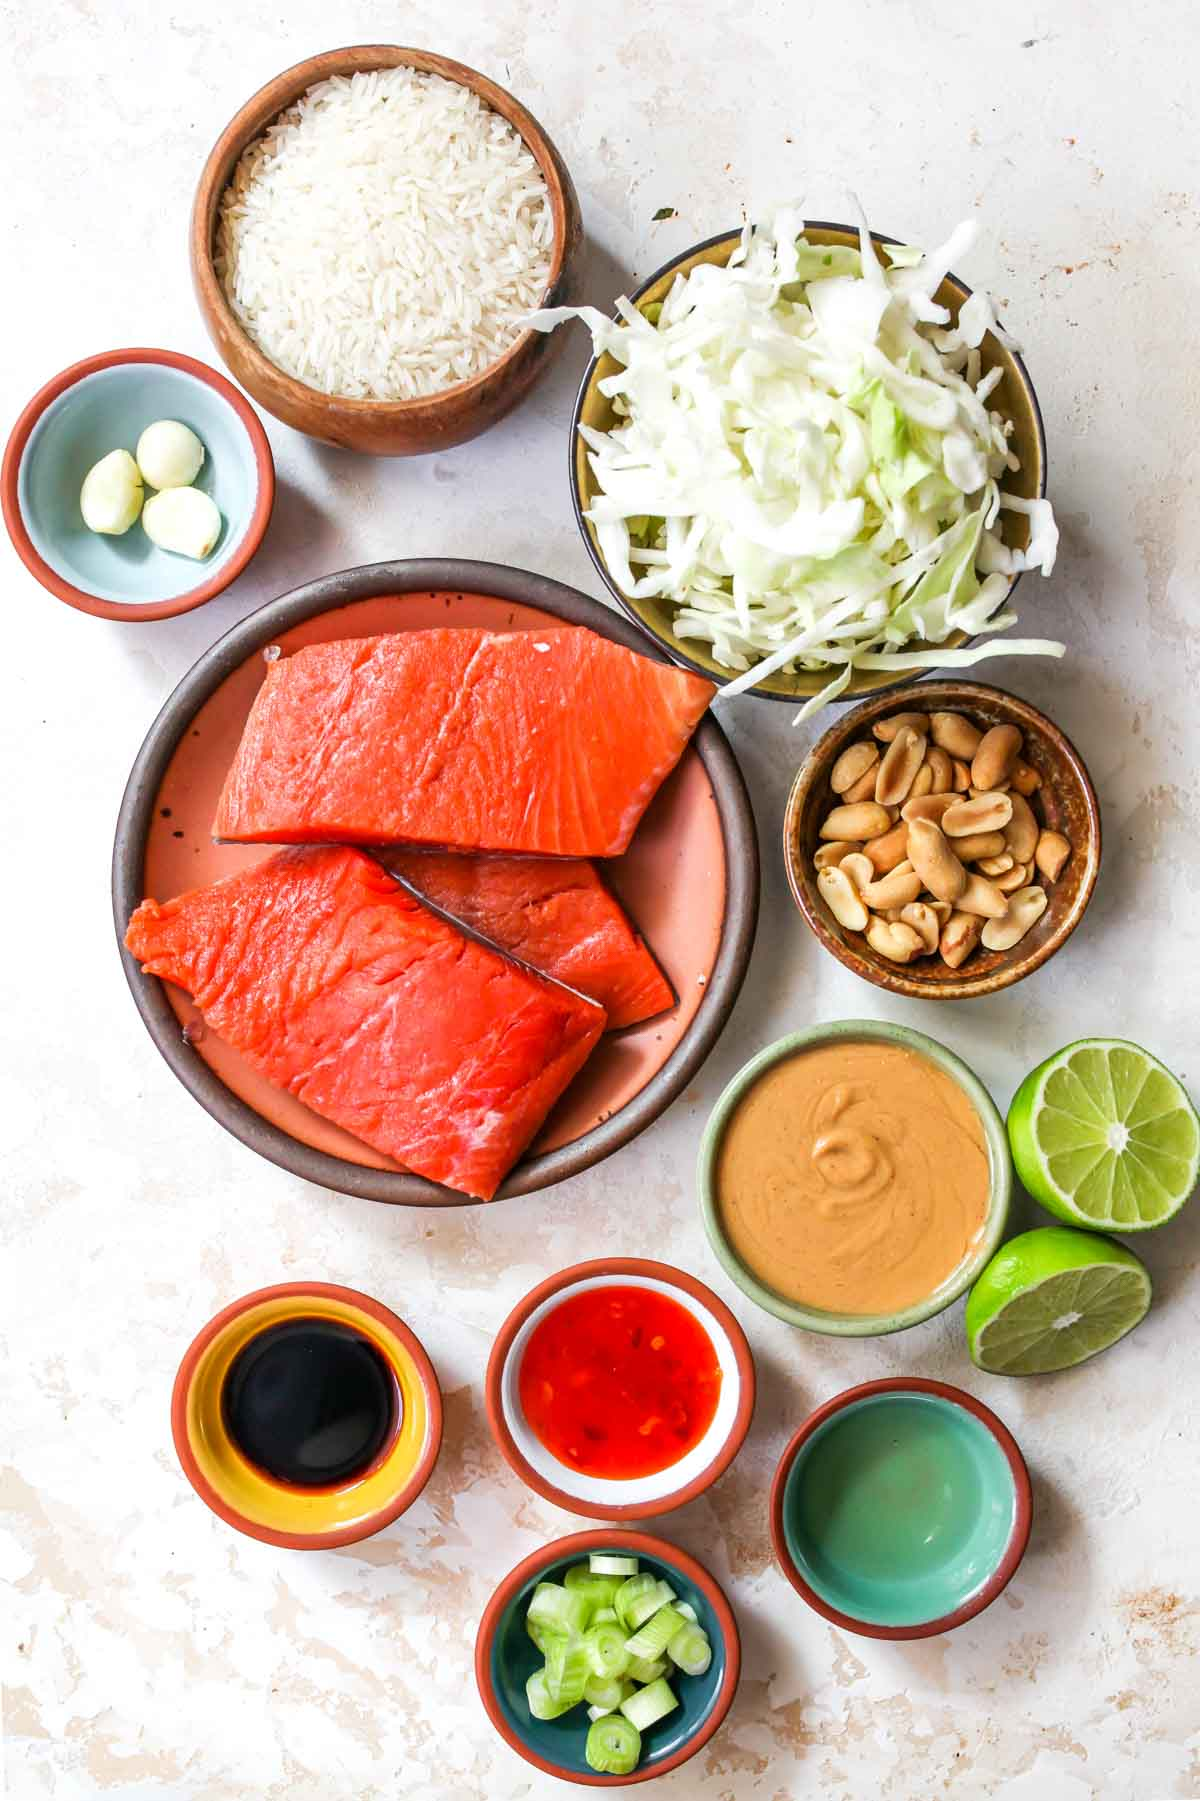 Recipe ingredients including salmon, rice, slaw, and peanut sauce ingredients on a white board